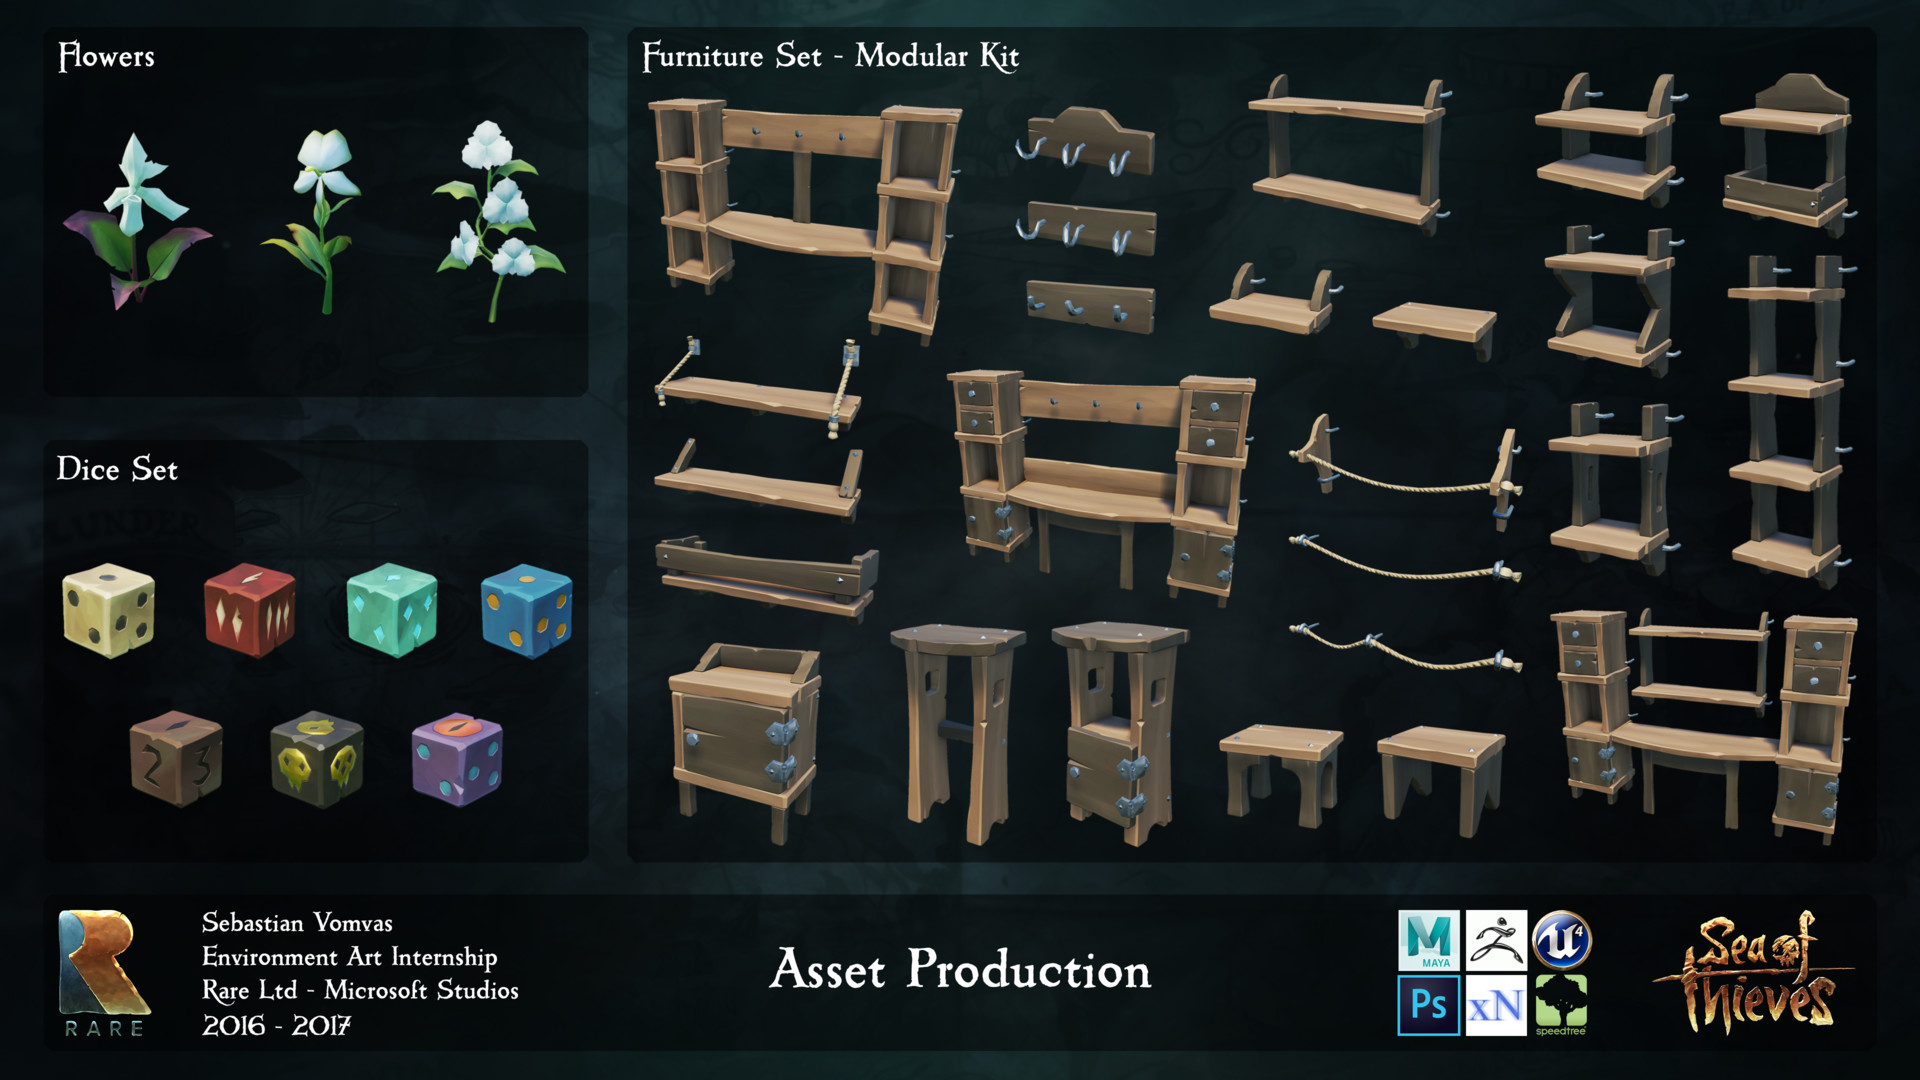 Sebastian vomvas 2 asset production